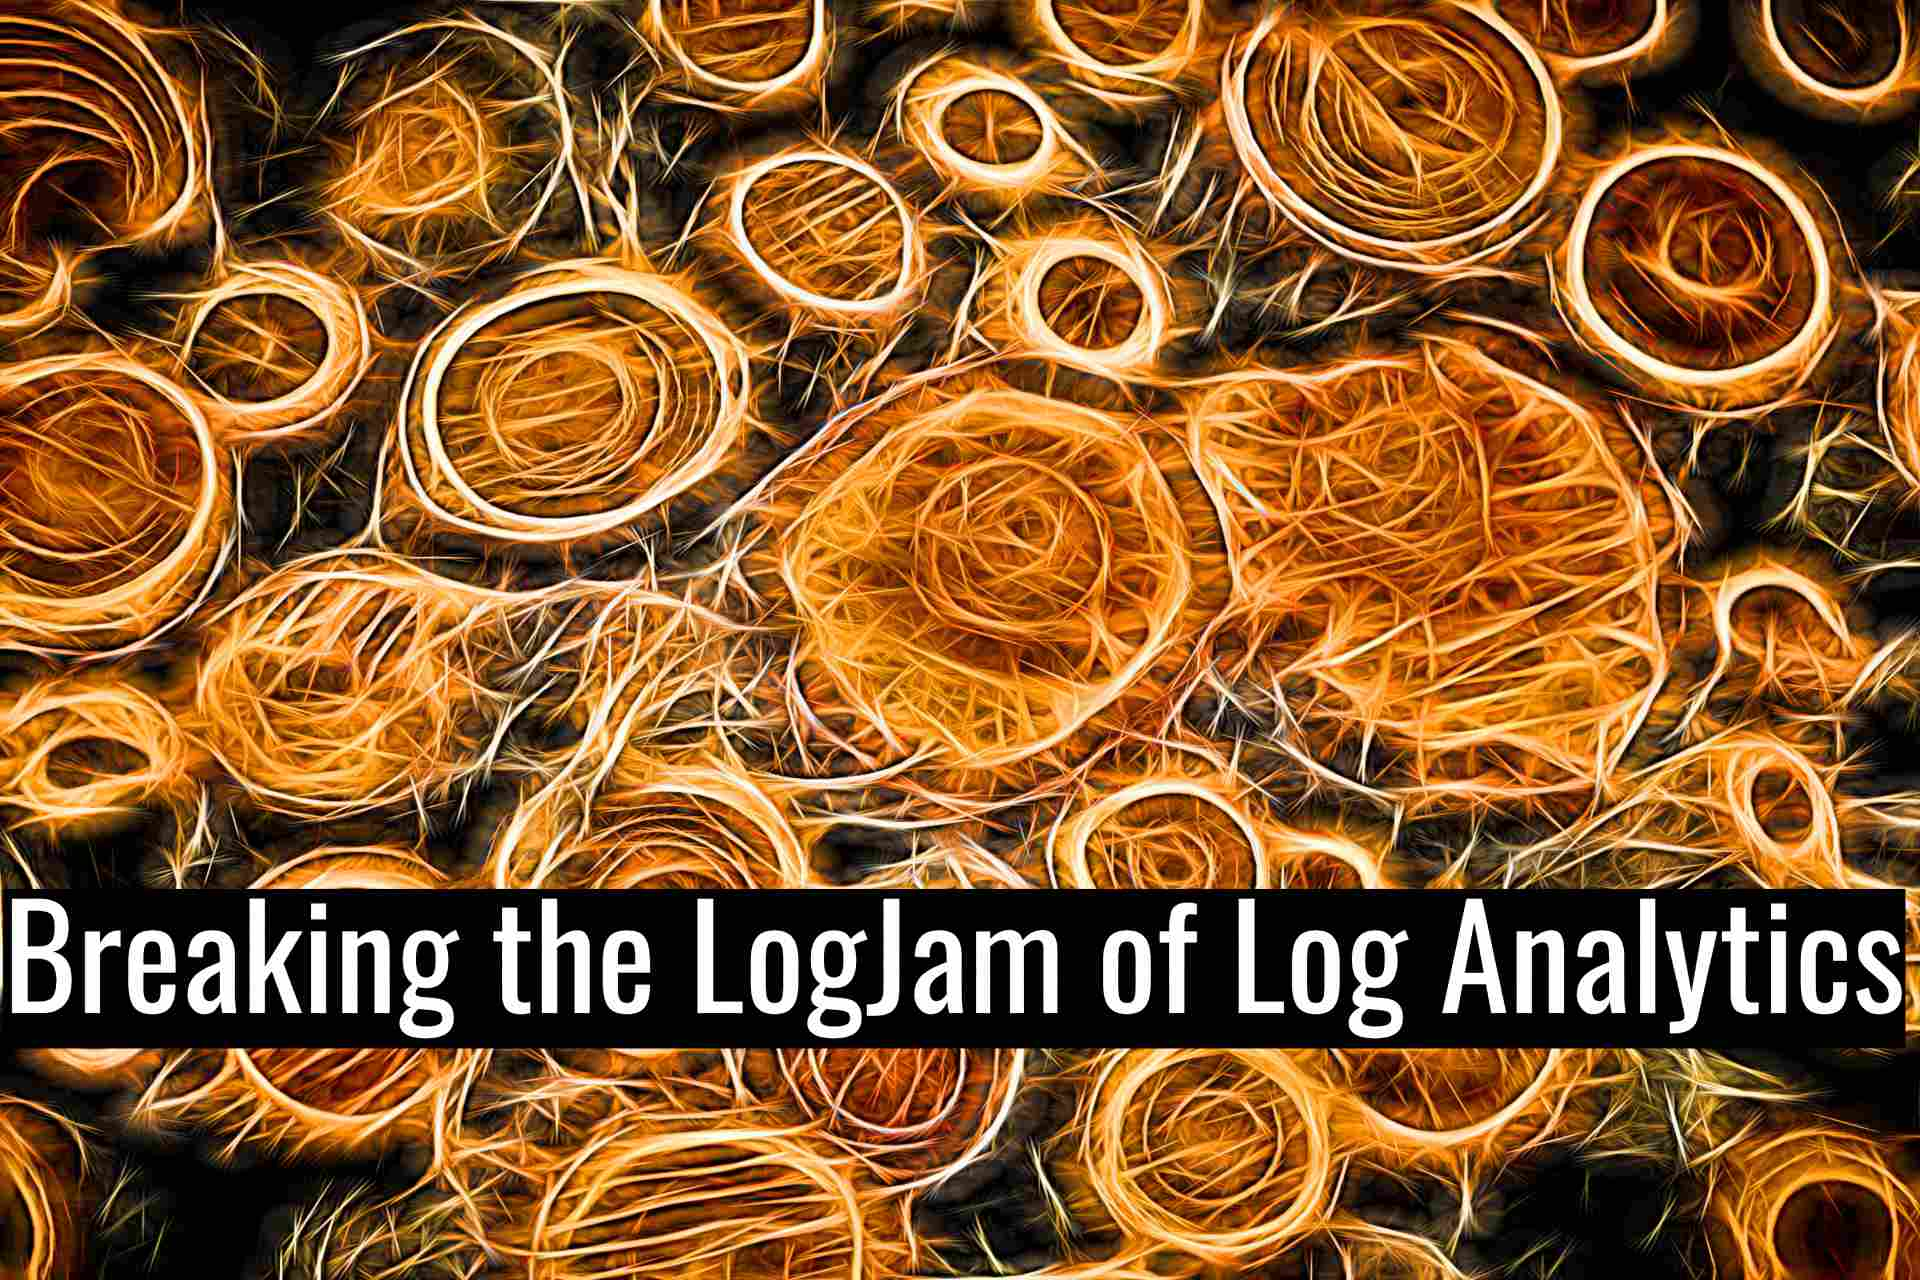 Breaking the Logjam of Log Analytics